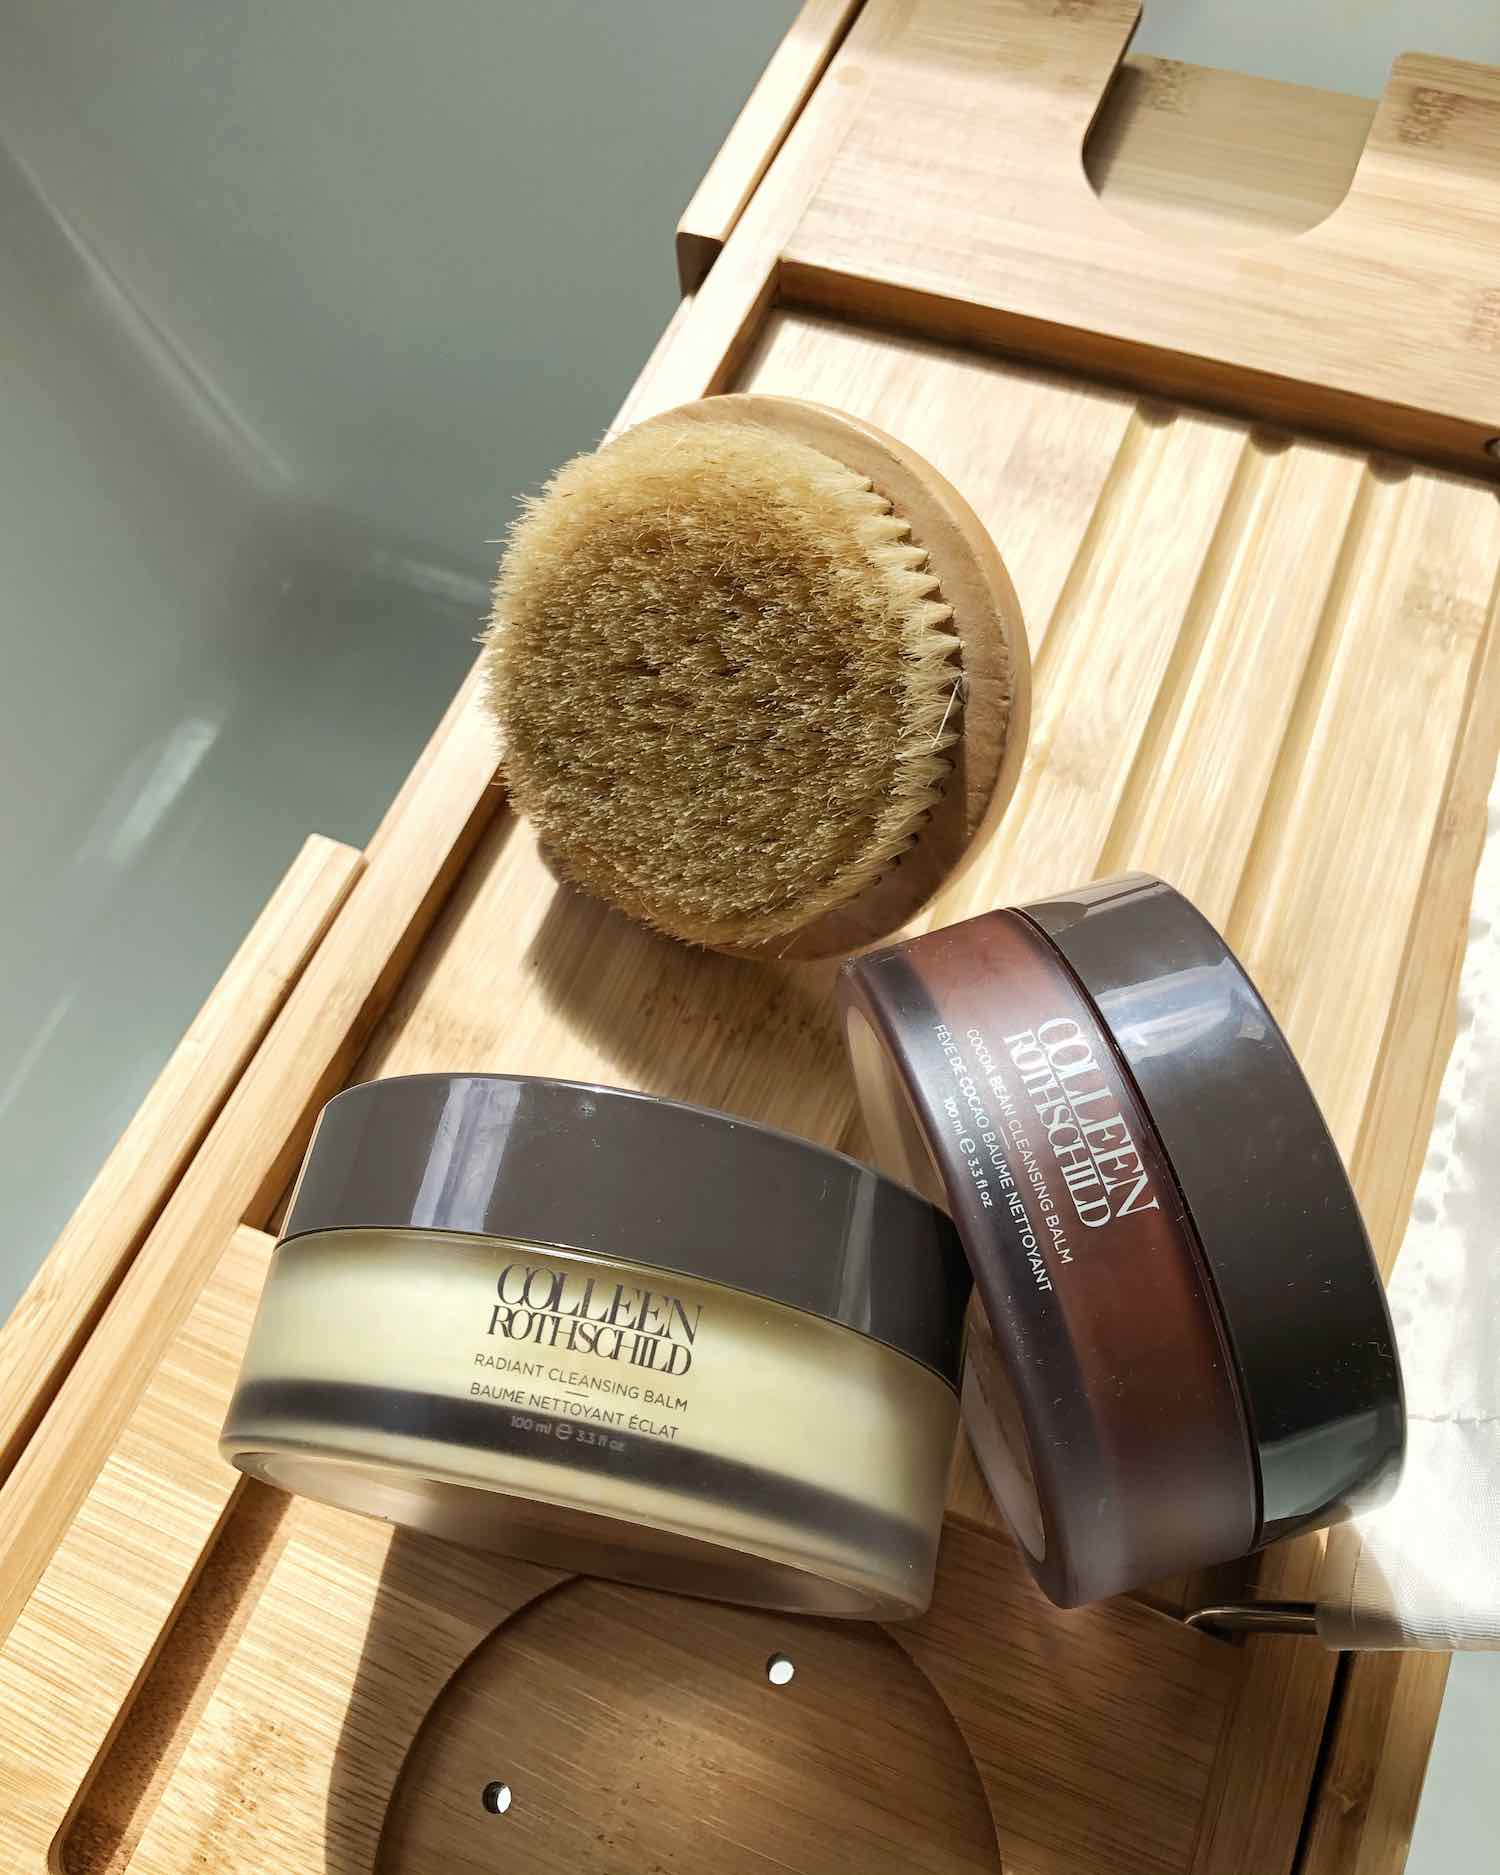 Best Cleansing Balms - Colleen Rothschild Radiant Cleansing Balm